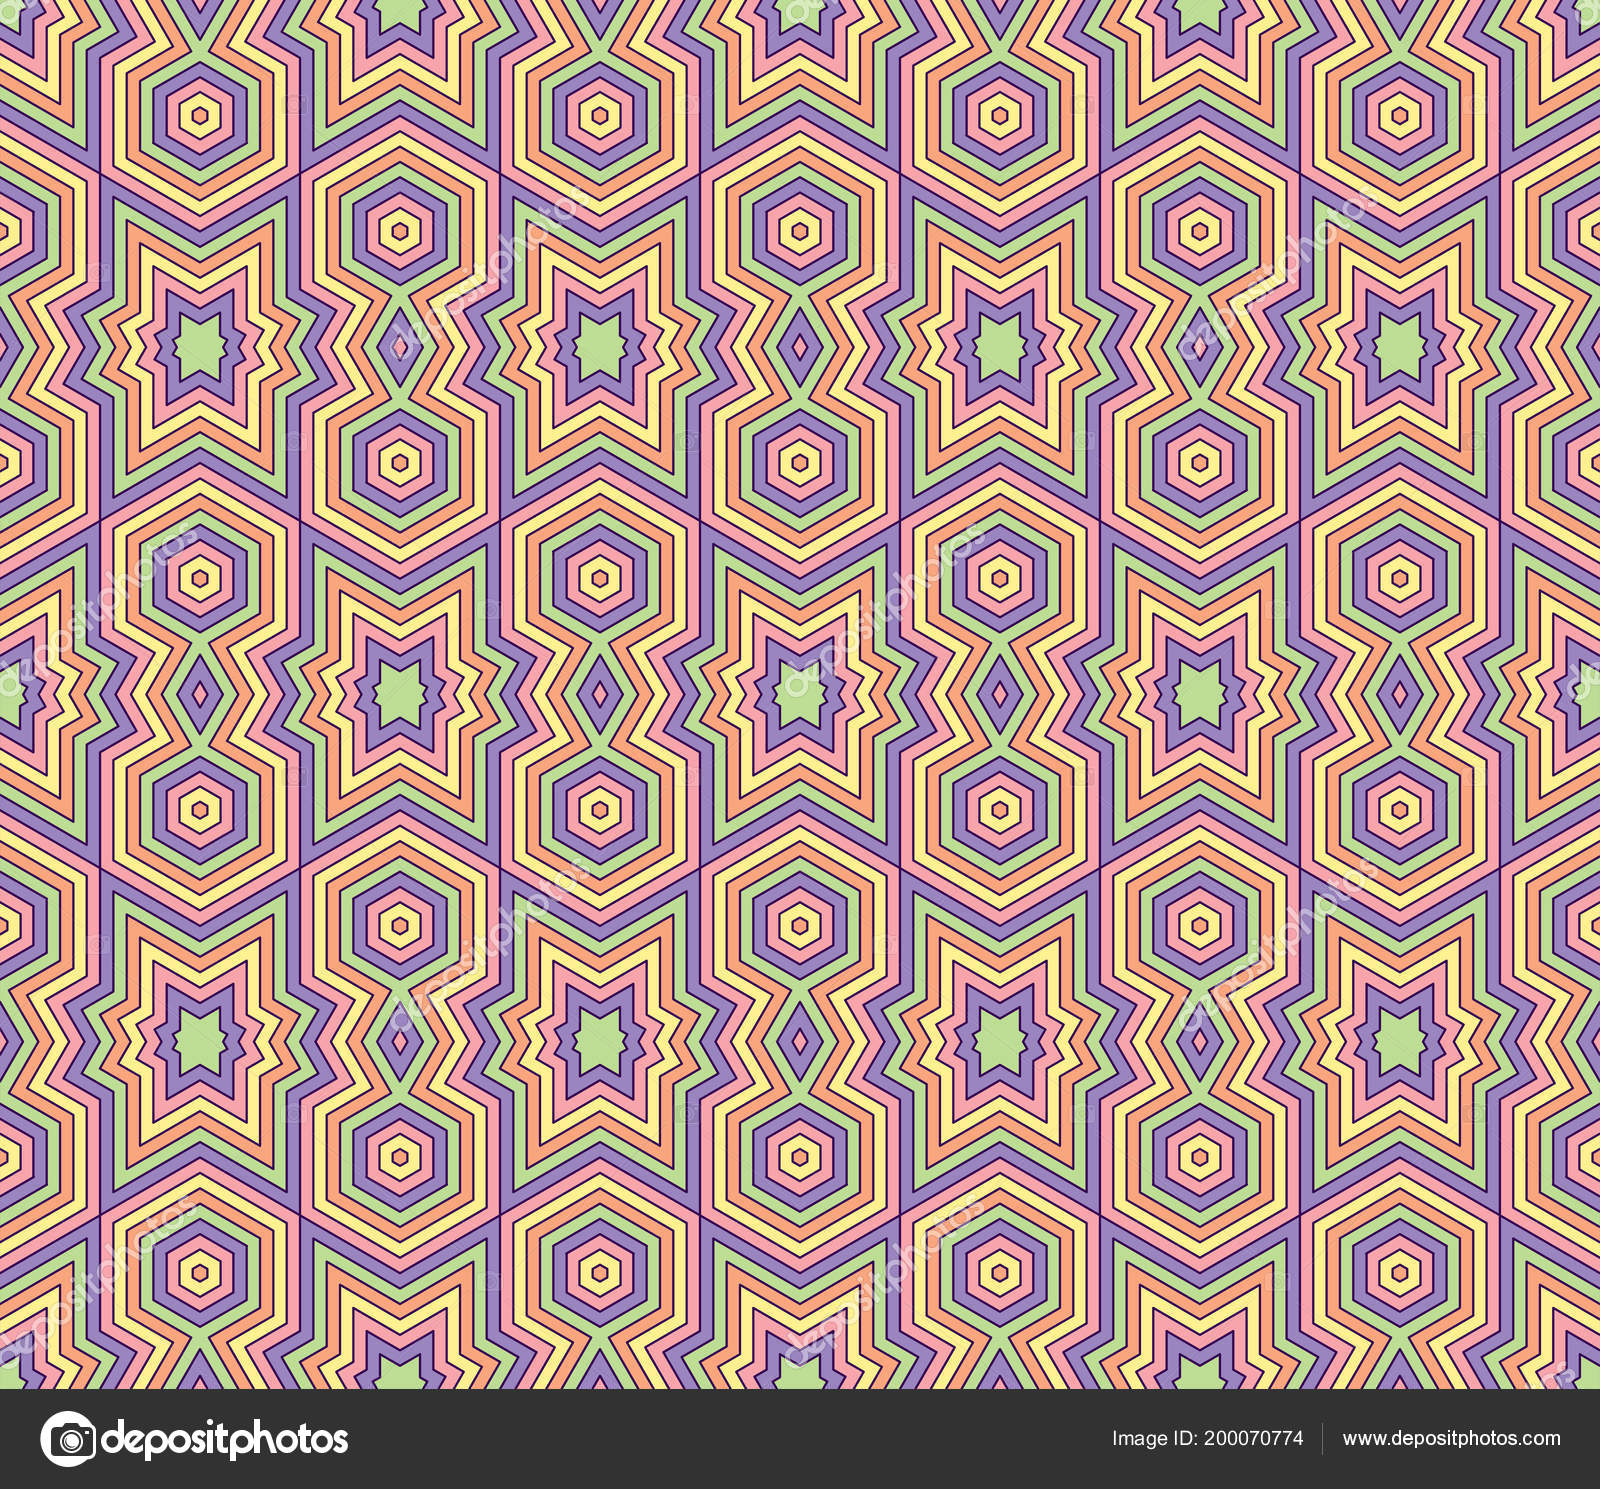 High Quality Colorful Wallpaper Islamic Arabic Style Seamless Asian Patterns